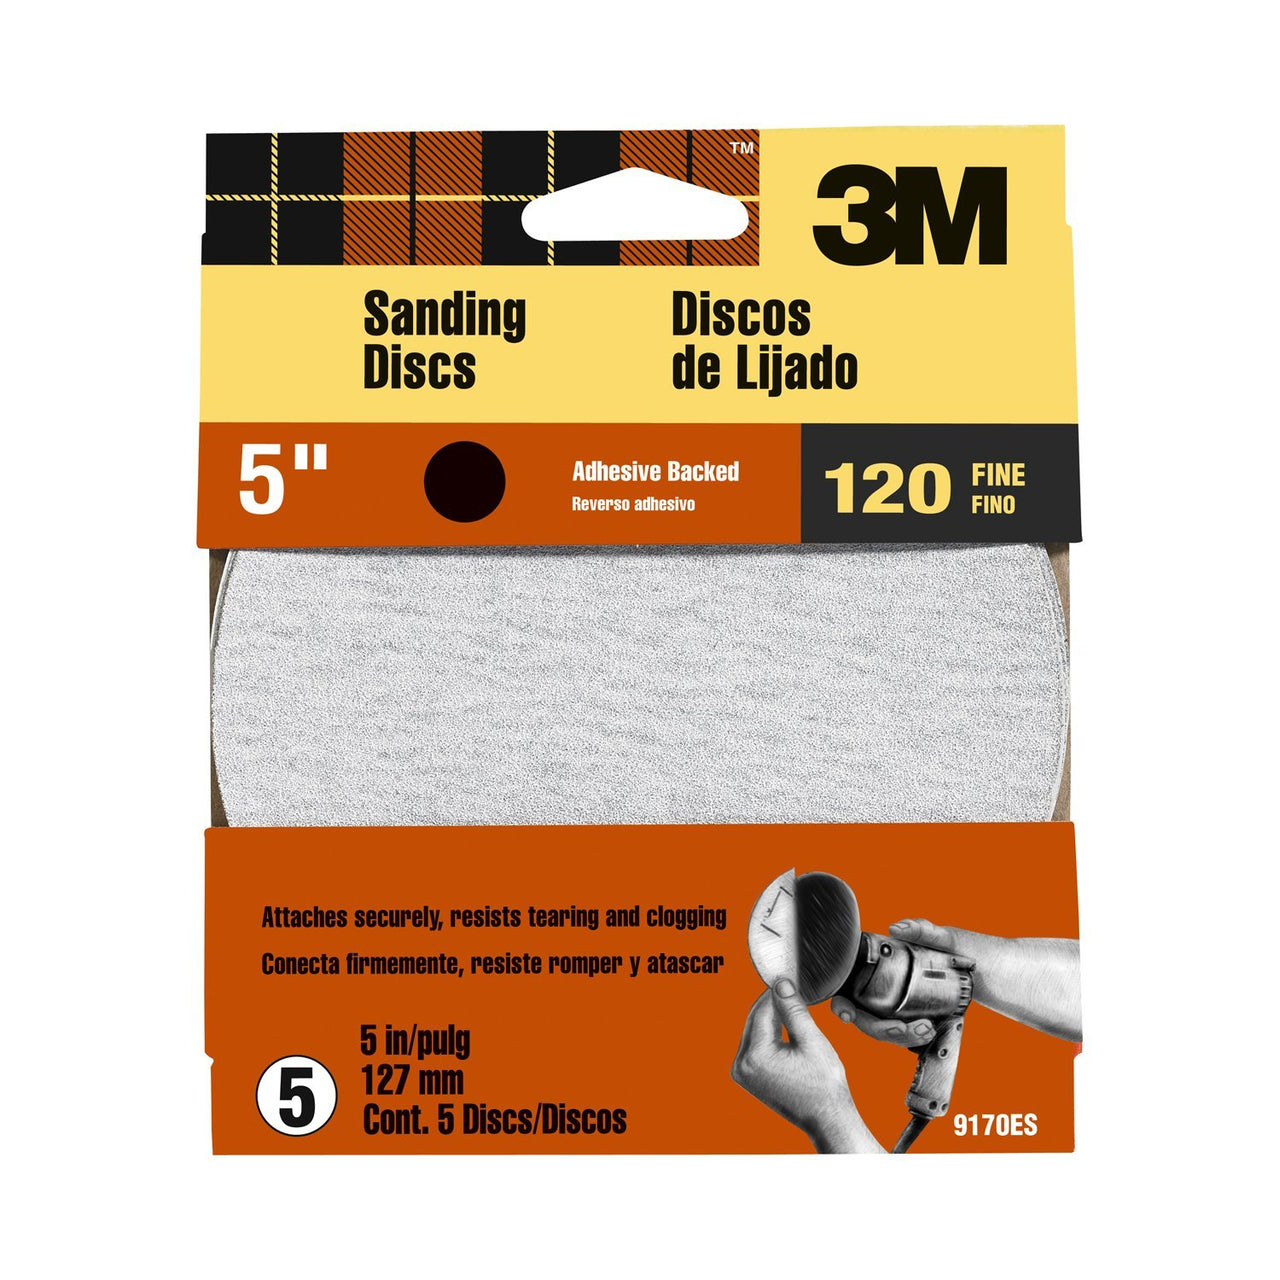 "3M 9170ES Adhesive Backed Multi-Purpose Sanding Disc, 5"", Fine 120 Grit, 5-Pack"